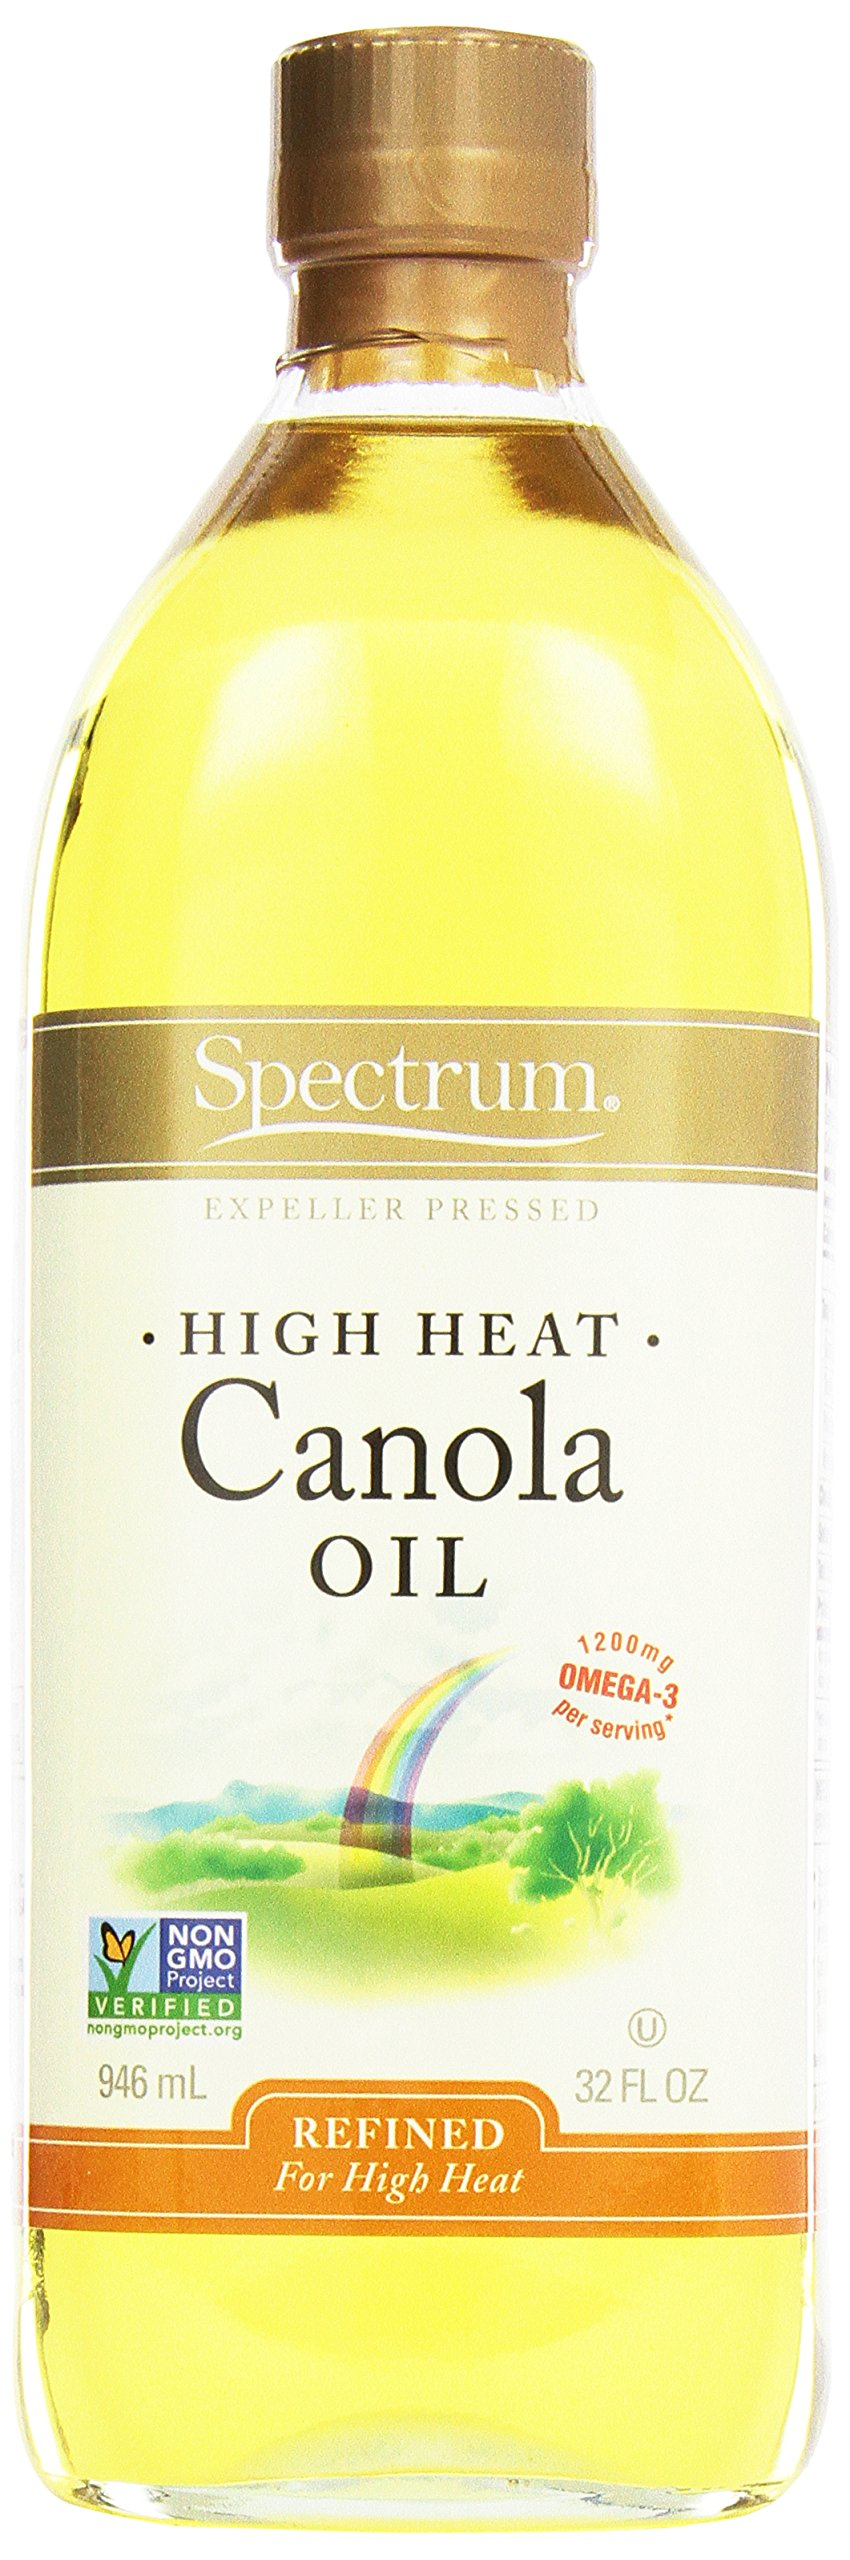 Spectrum Canola Oil, 32 oz